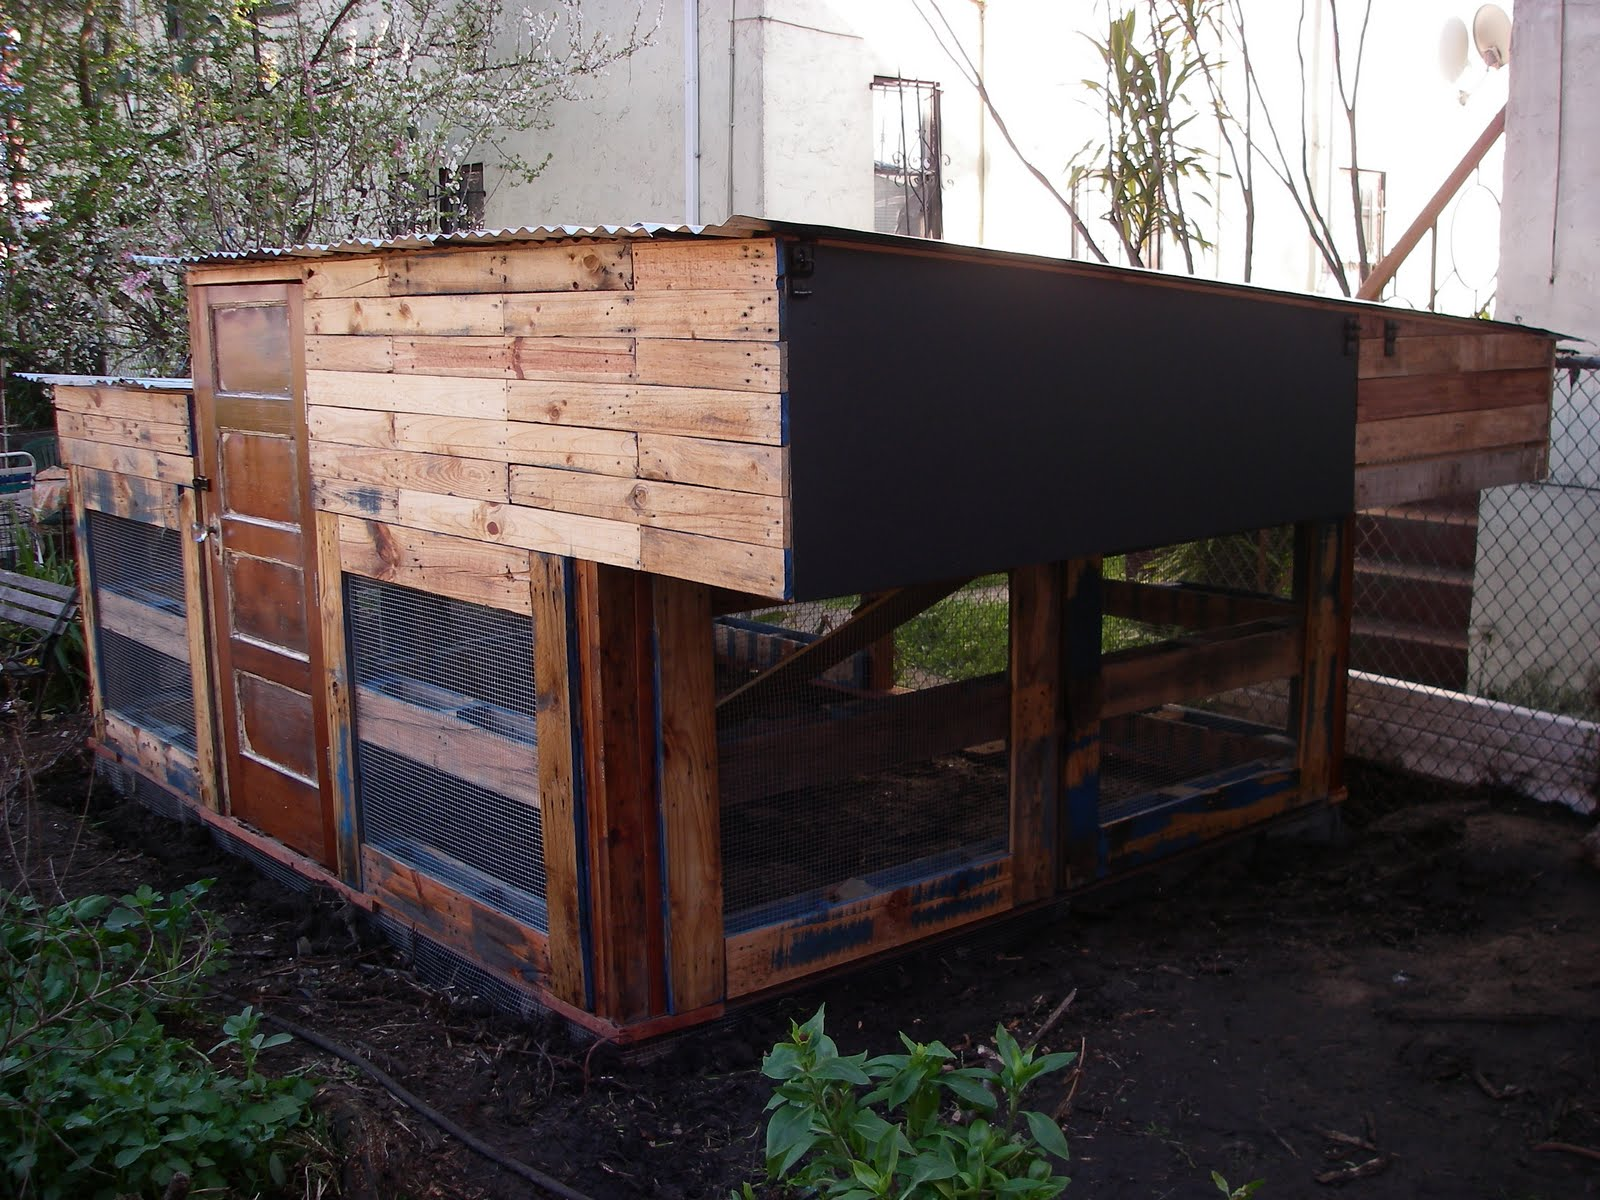 Charity 39 s pallet projects on pinterest duck house for How to build a chicken coop from wooden pallets